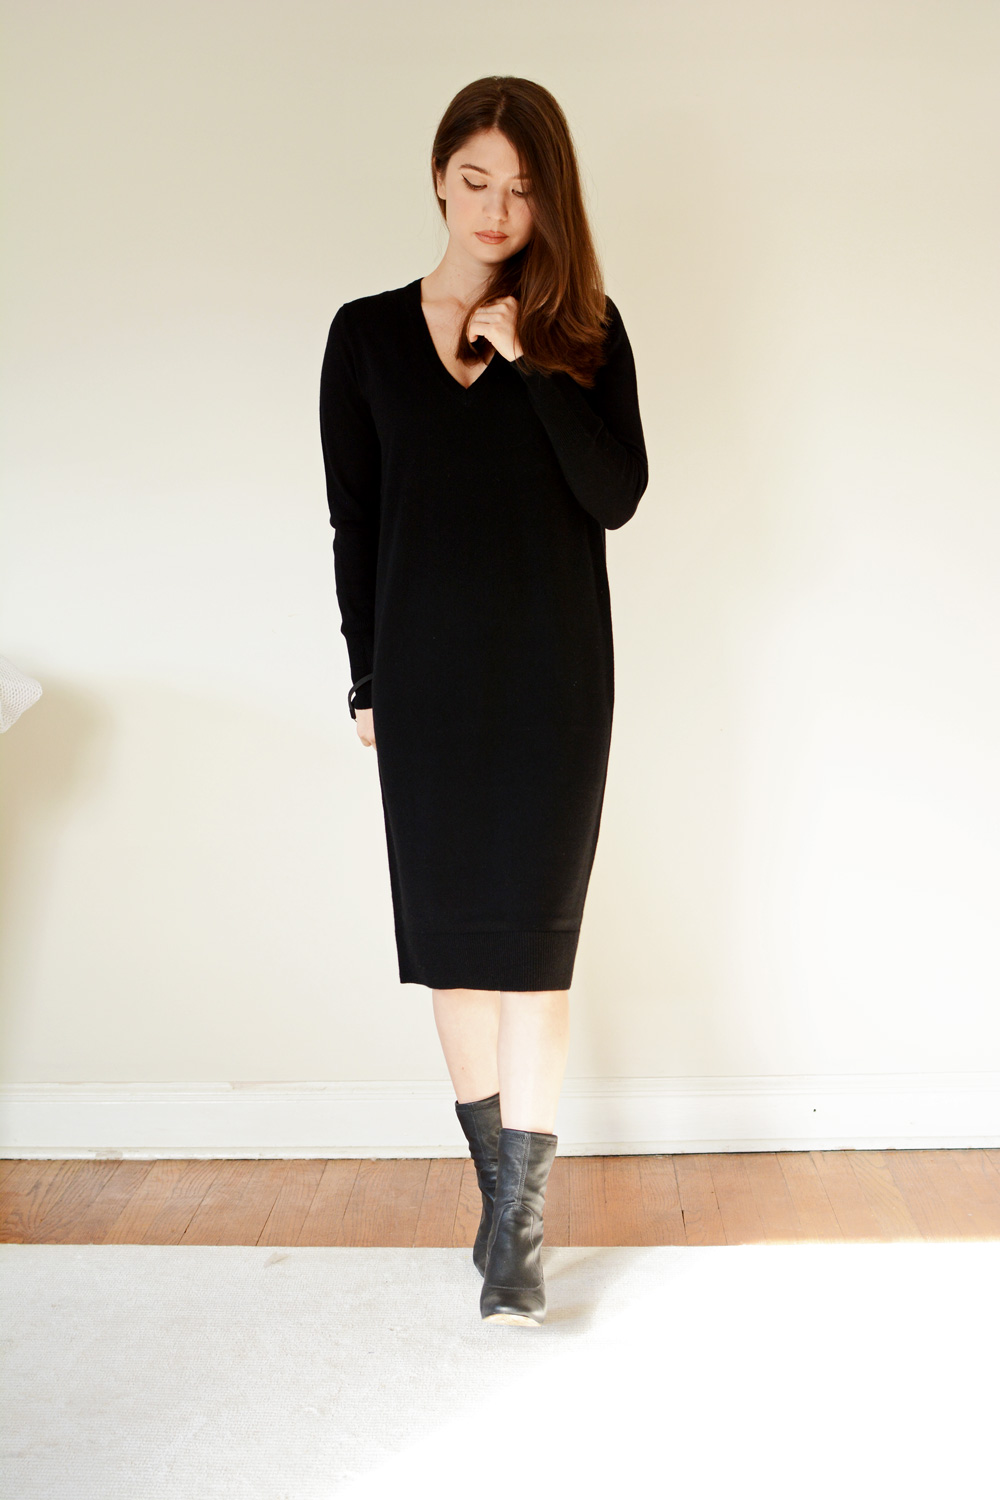 Everlane Cashmere V-Neck Midi Dress review sizing photos